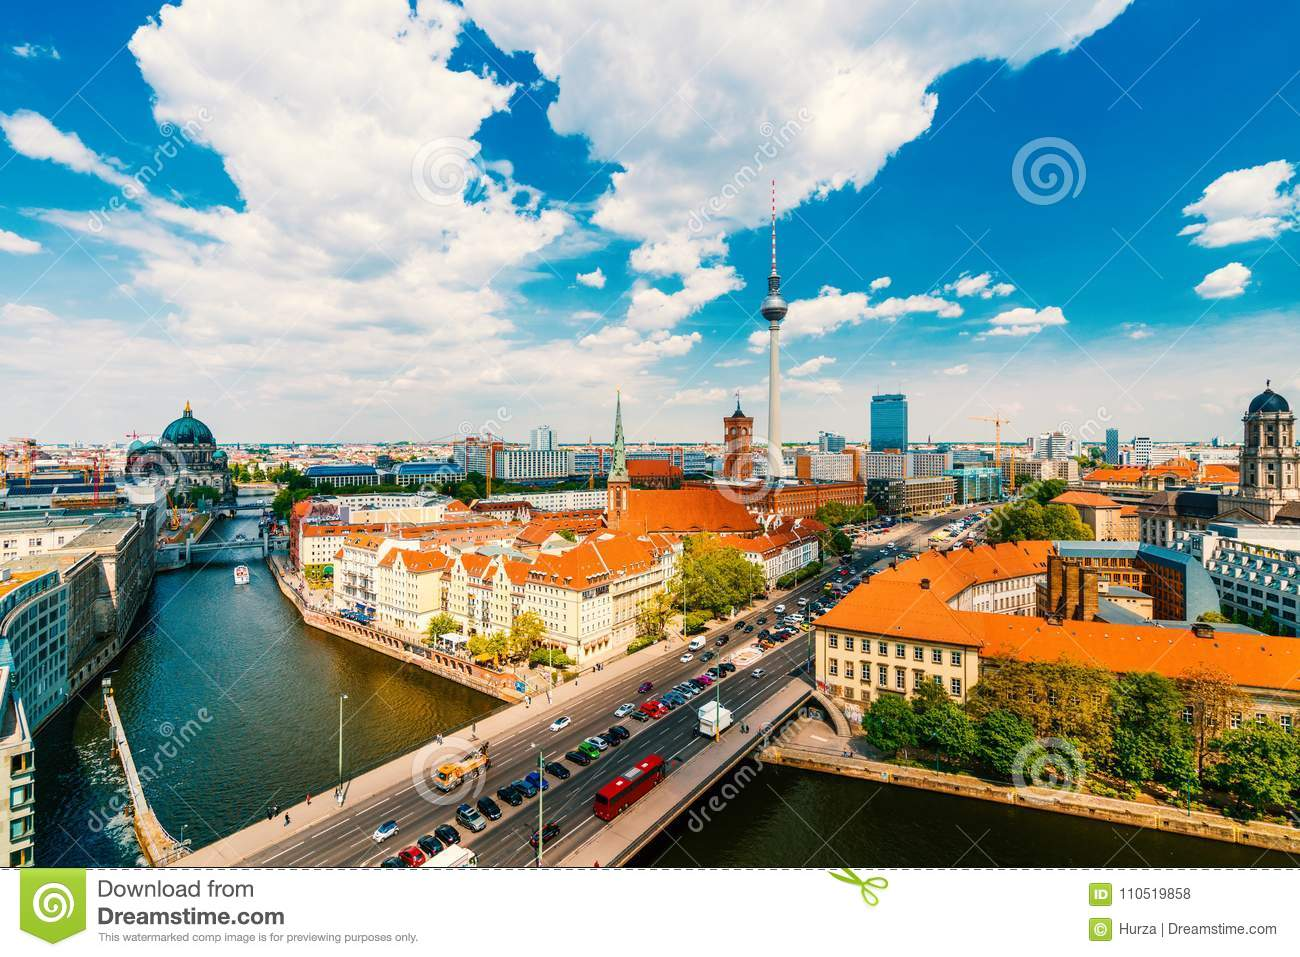 Berlin, Germany, during summer